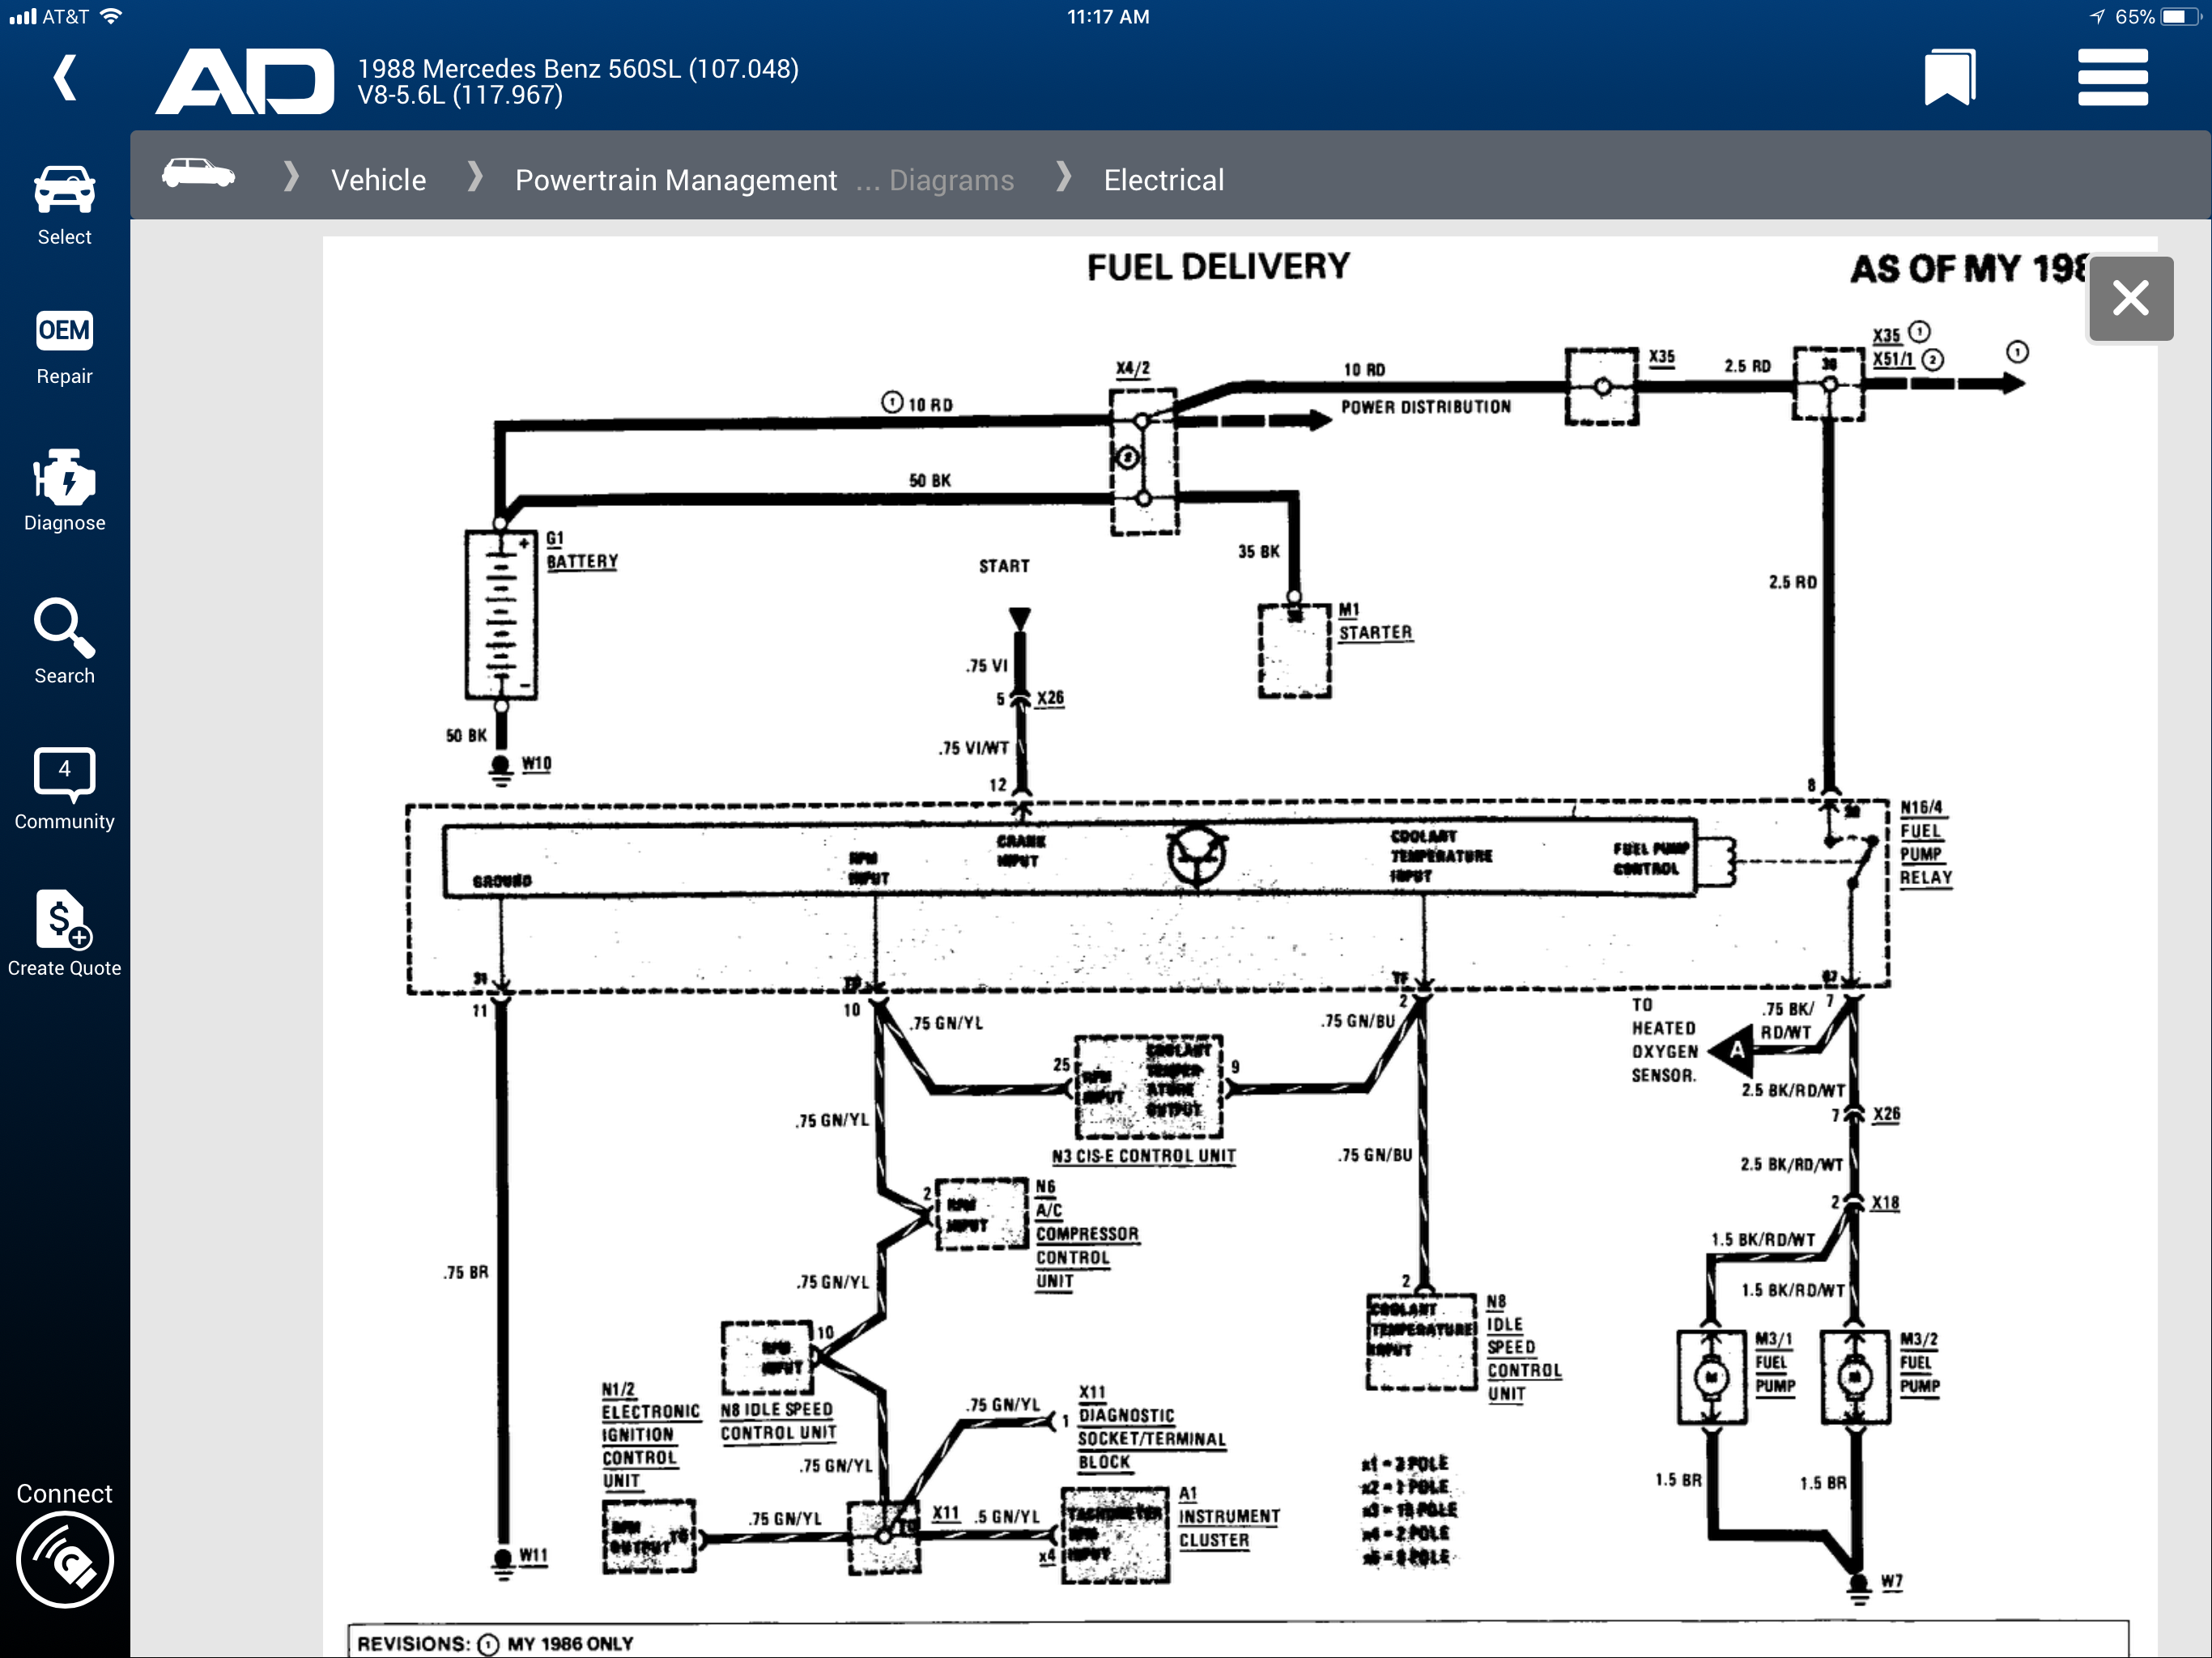 Wiring Diagrams In Addition Mercedes 560sl Fuel Pump Relay Location